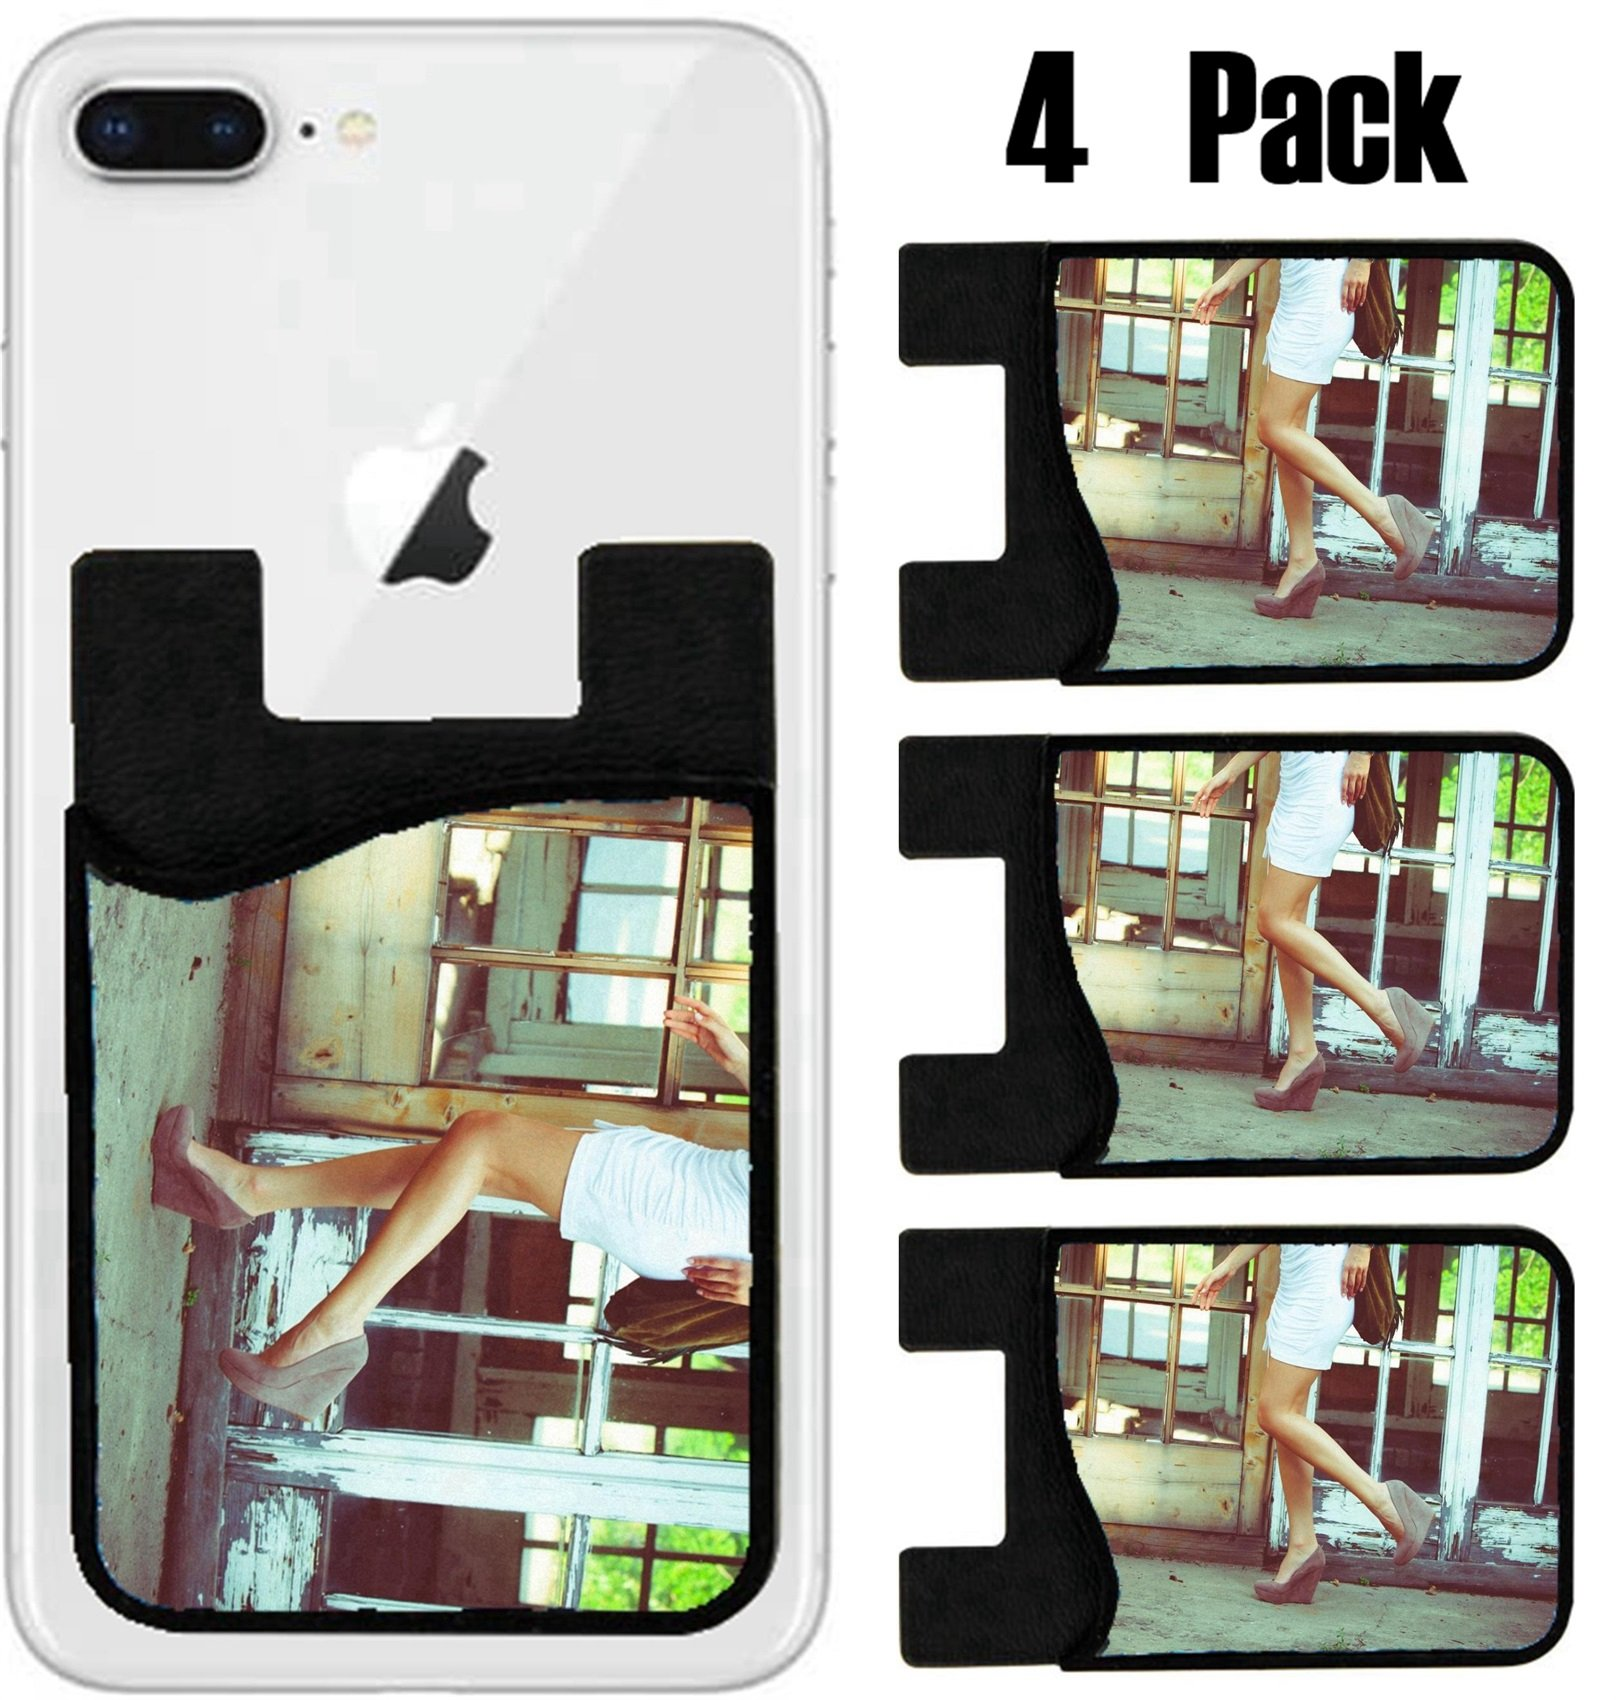 MSD Phone Card holder sleeve wallet for iPhone Samsung Android and all smartphones with removable microfiber screen cleaner Silicone card Caddy(4 Pack) IMAGE ID 20887217 woman in white summer dress a